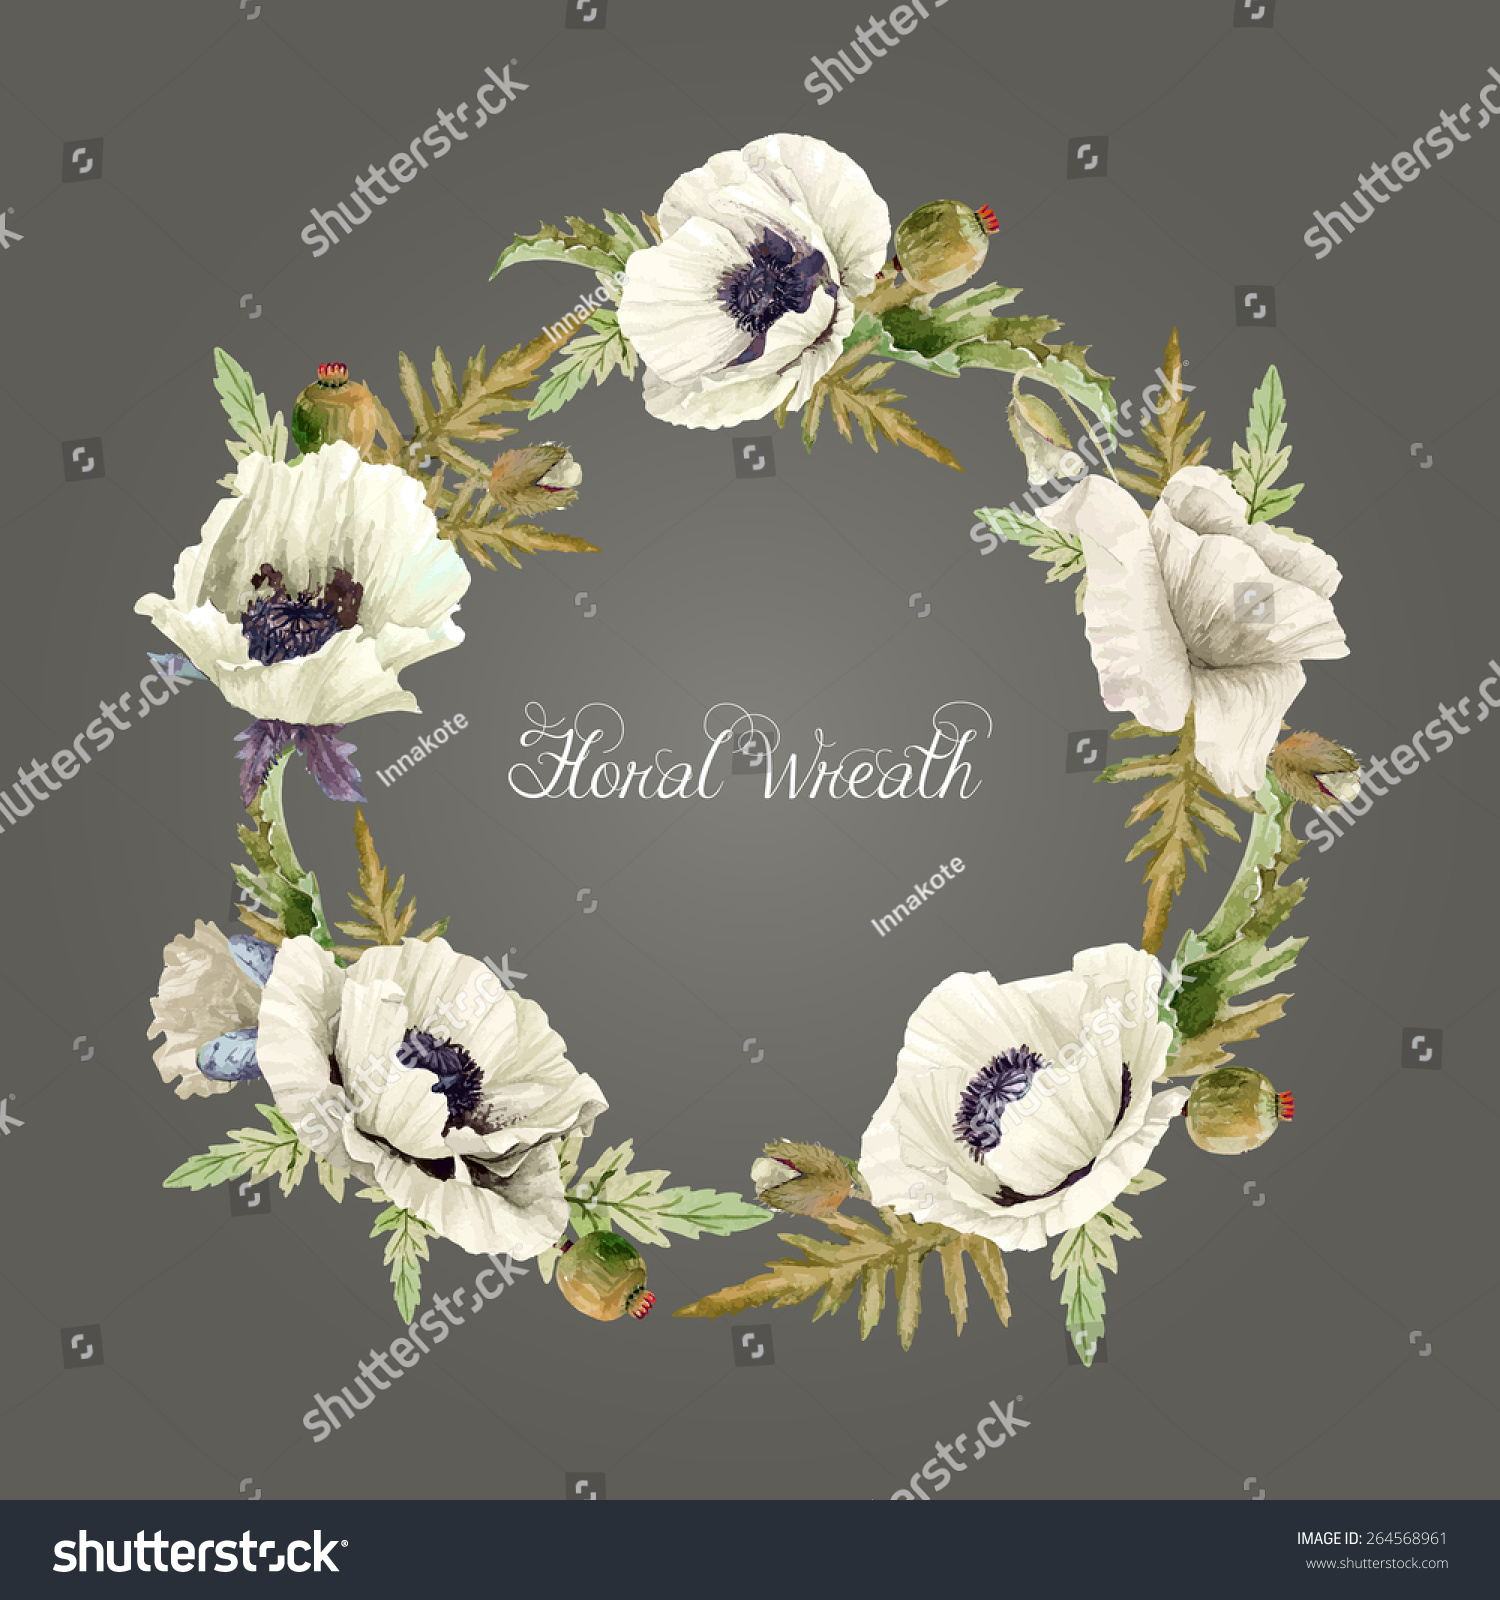 Vector round frame with pink flowers on white background in pastel - Round Frame Of Watercolor White Poppies Vector Illustration Wreath Of Flowers Can Be Used